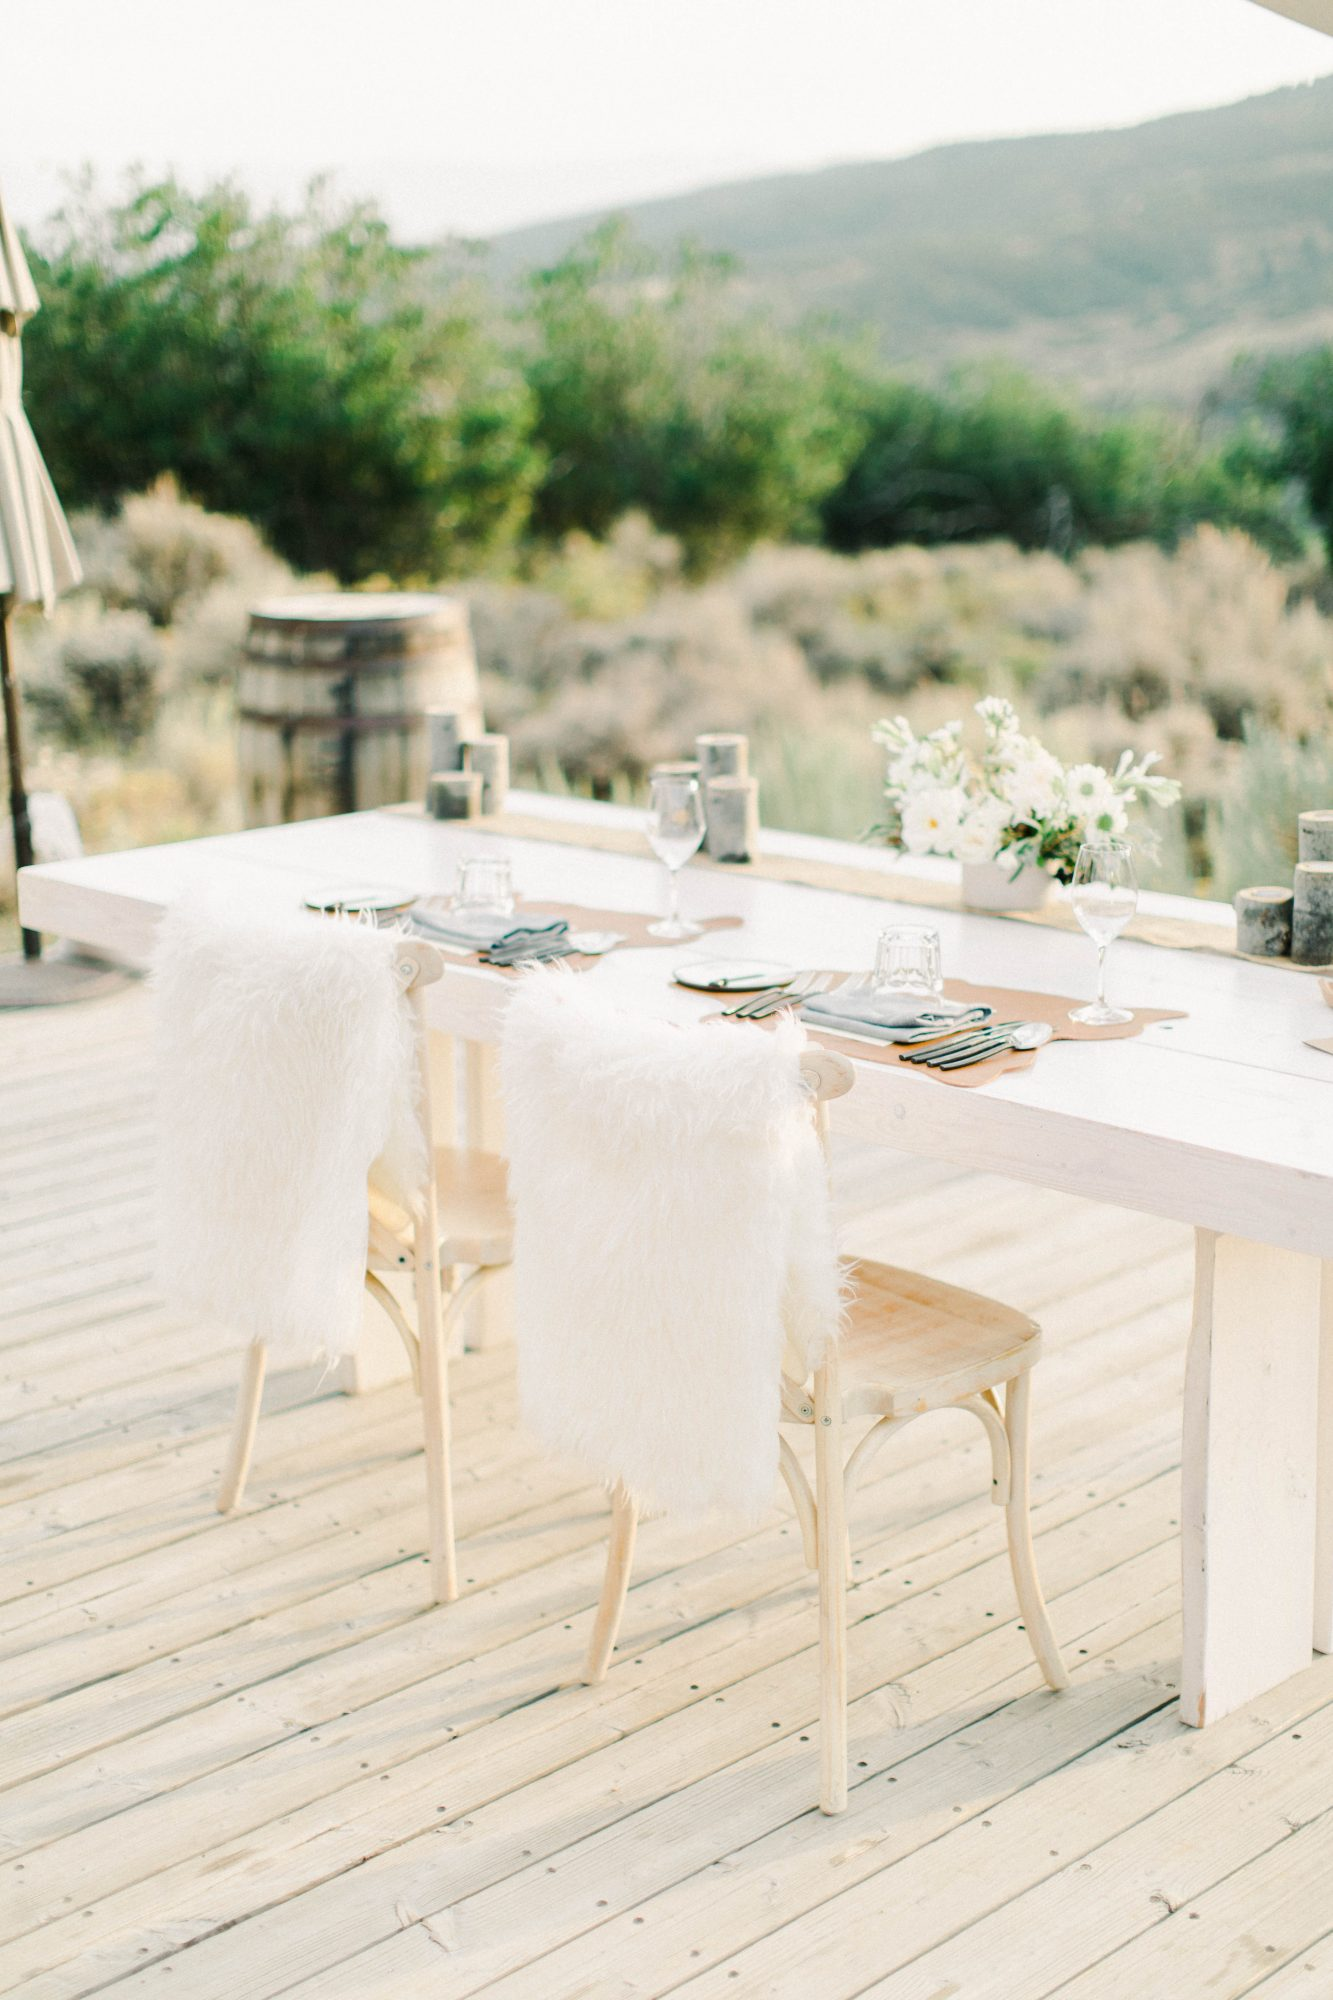 Table setting with flora arrangement